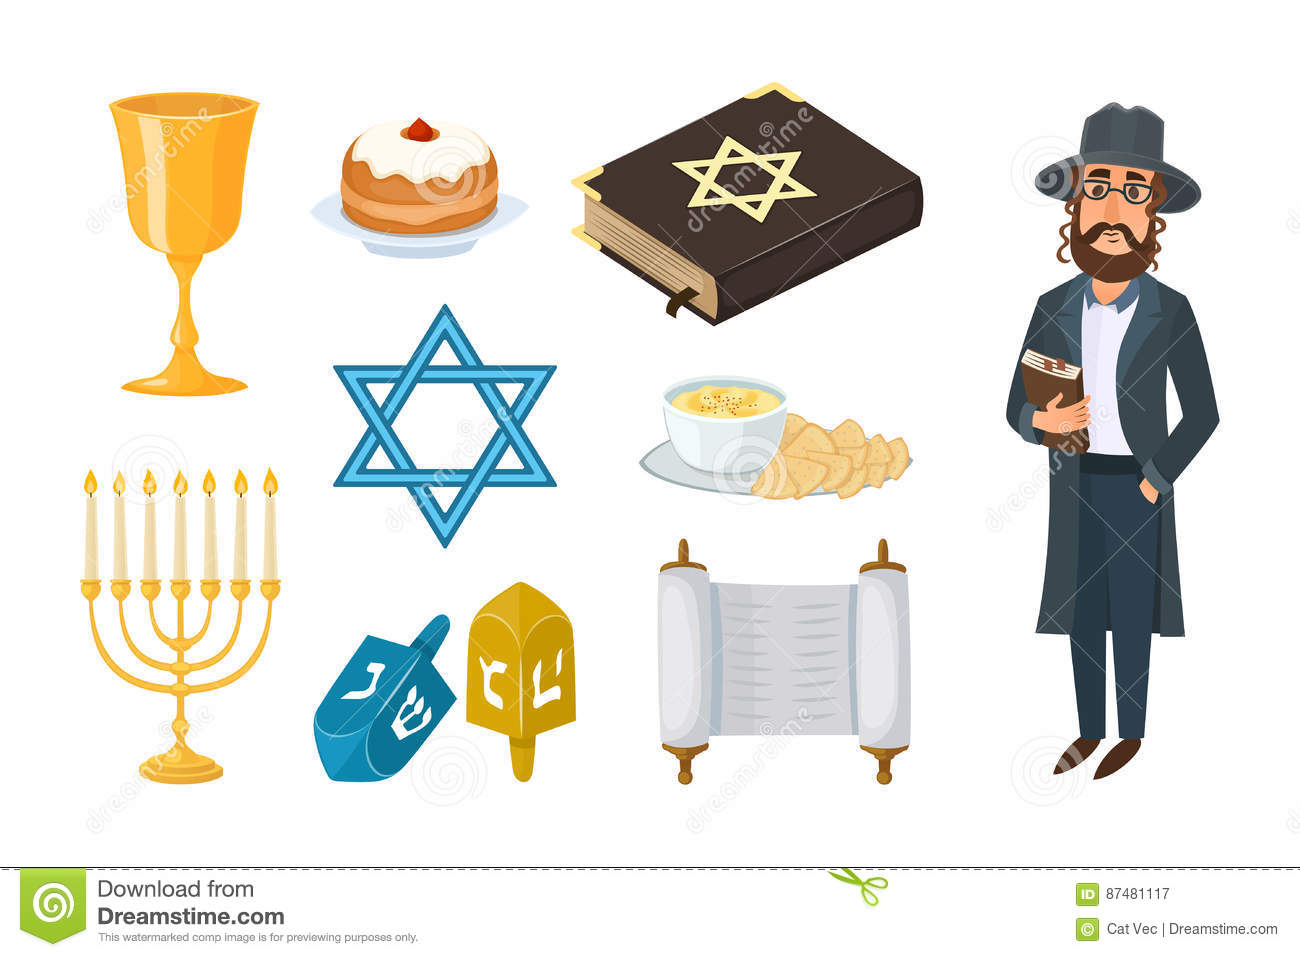 passover judaism Pesach (passover) level: basic passover is probably the best known of the jewish holidays among gentiles, mostly because it ties in with christian history (the last supper was apparently a passover seder), and because a lot of its observances have been reinterpreted by christians as messianic and signs of jesus.